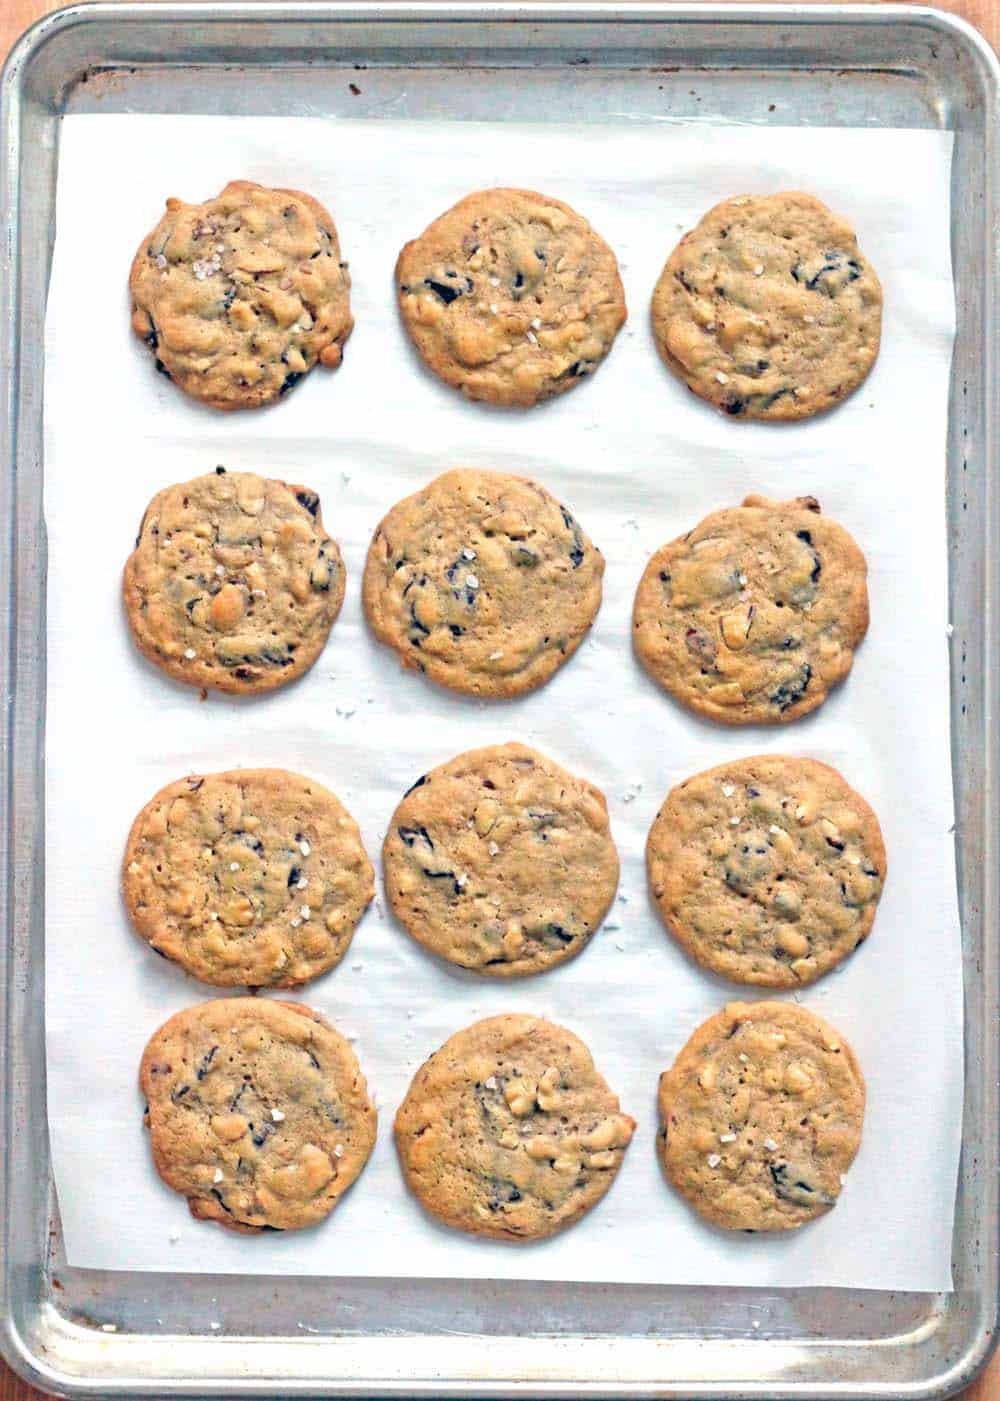 Bird's eye view of a baking sheet lined with parchment paper, holding 12 cookies spread out in rows.